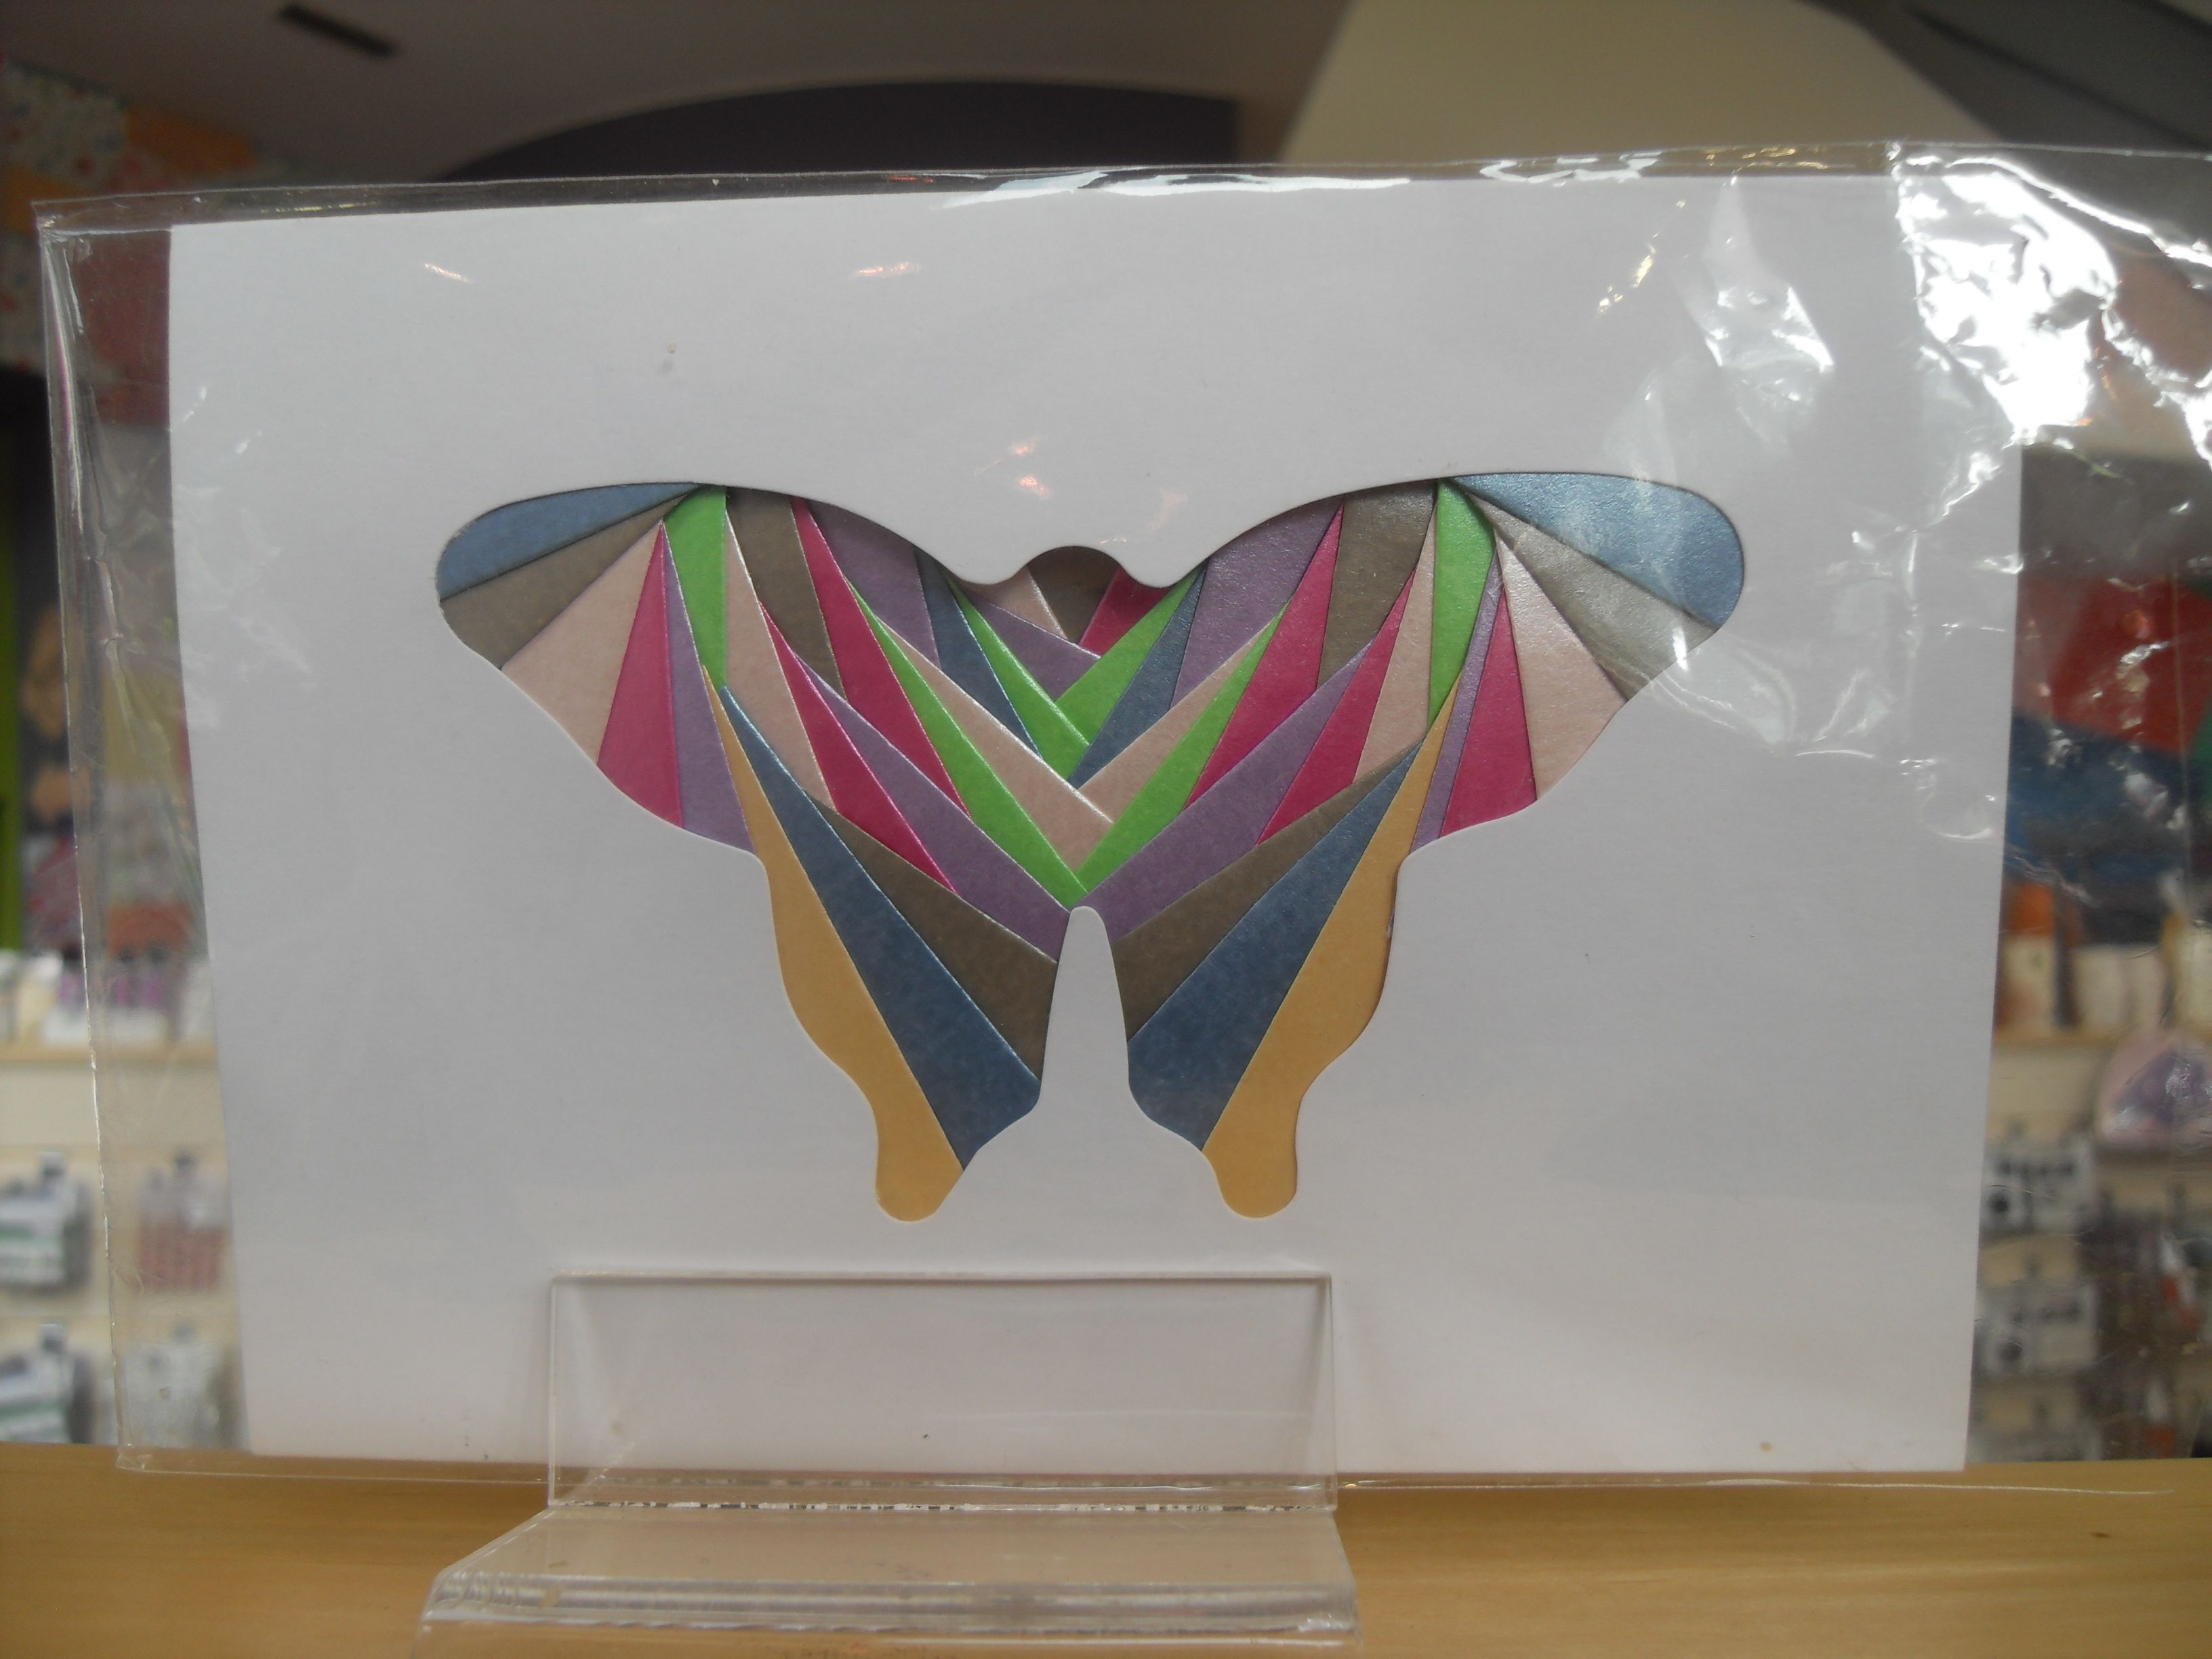 Iris folding.  Folded pieces of coloured paper in an aperture to create an image.